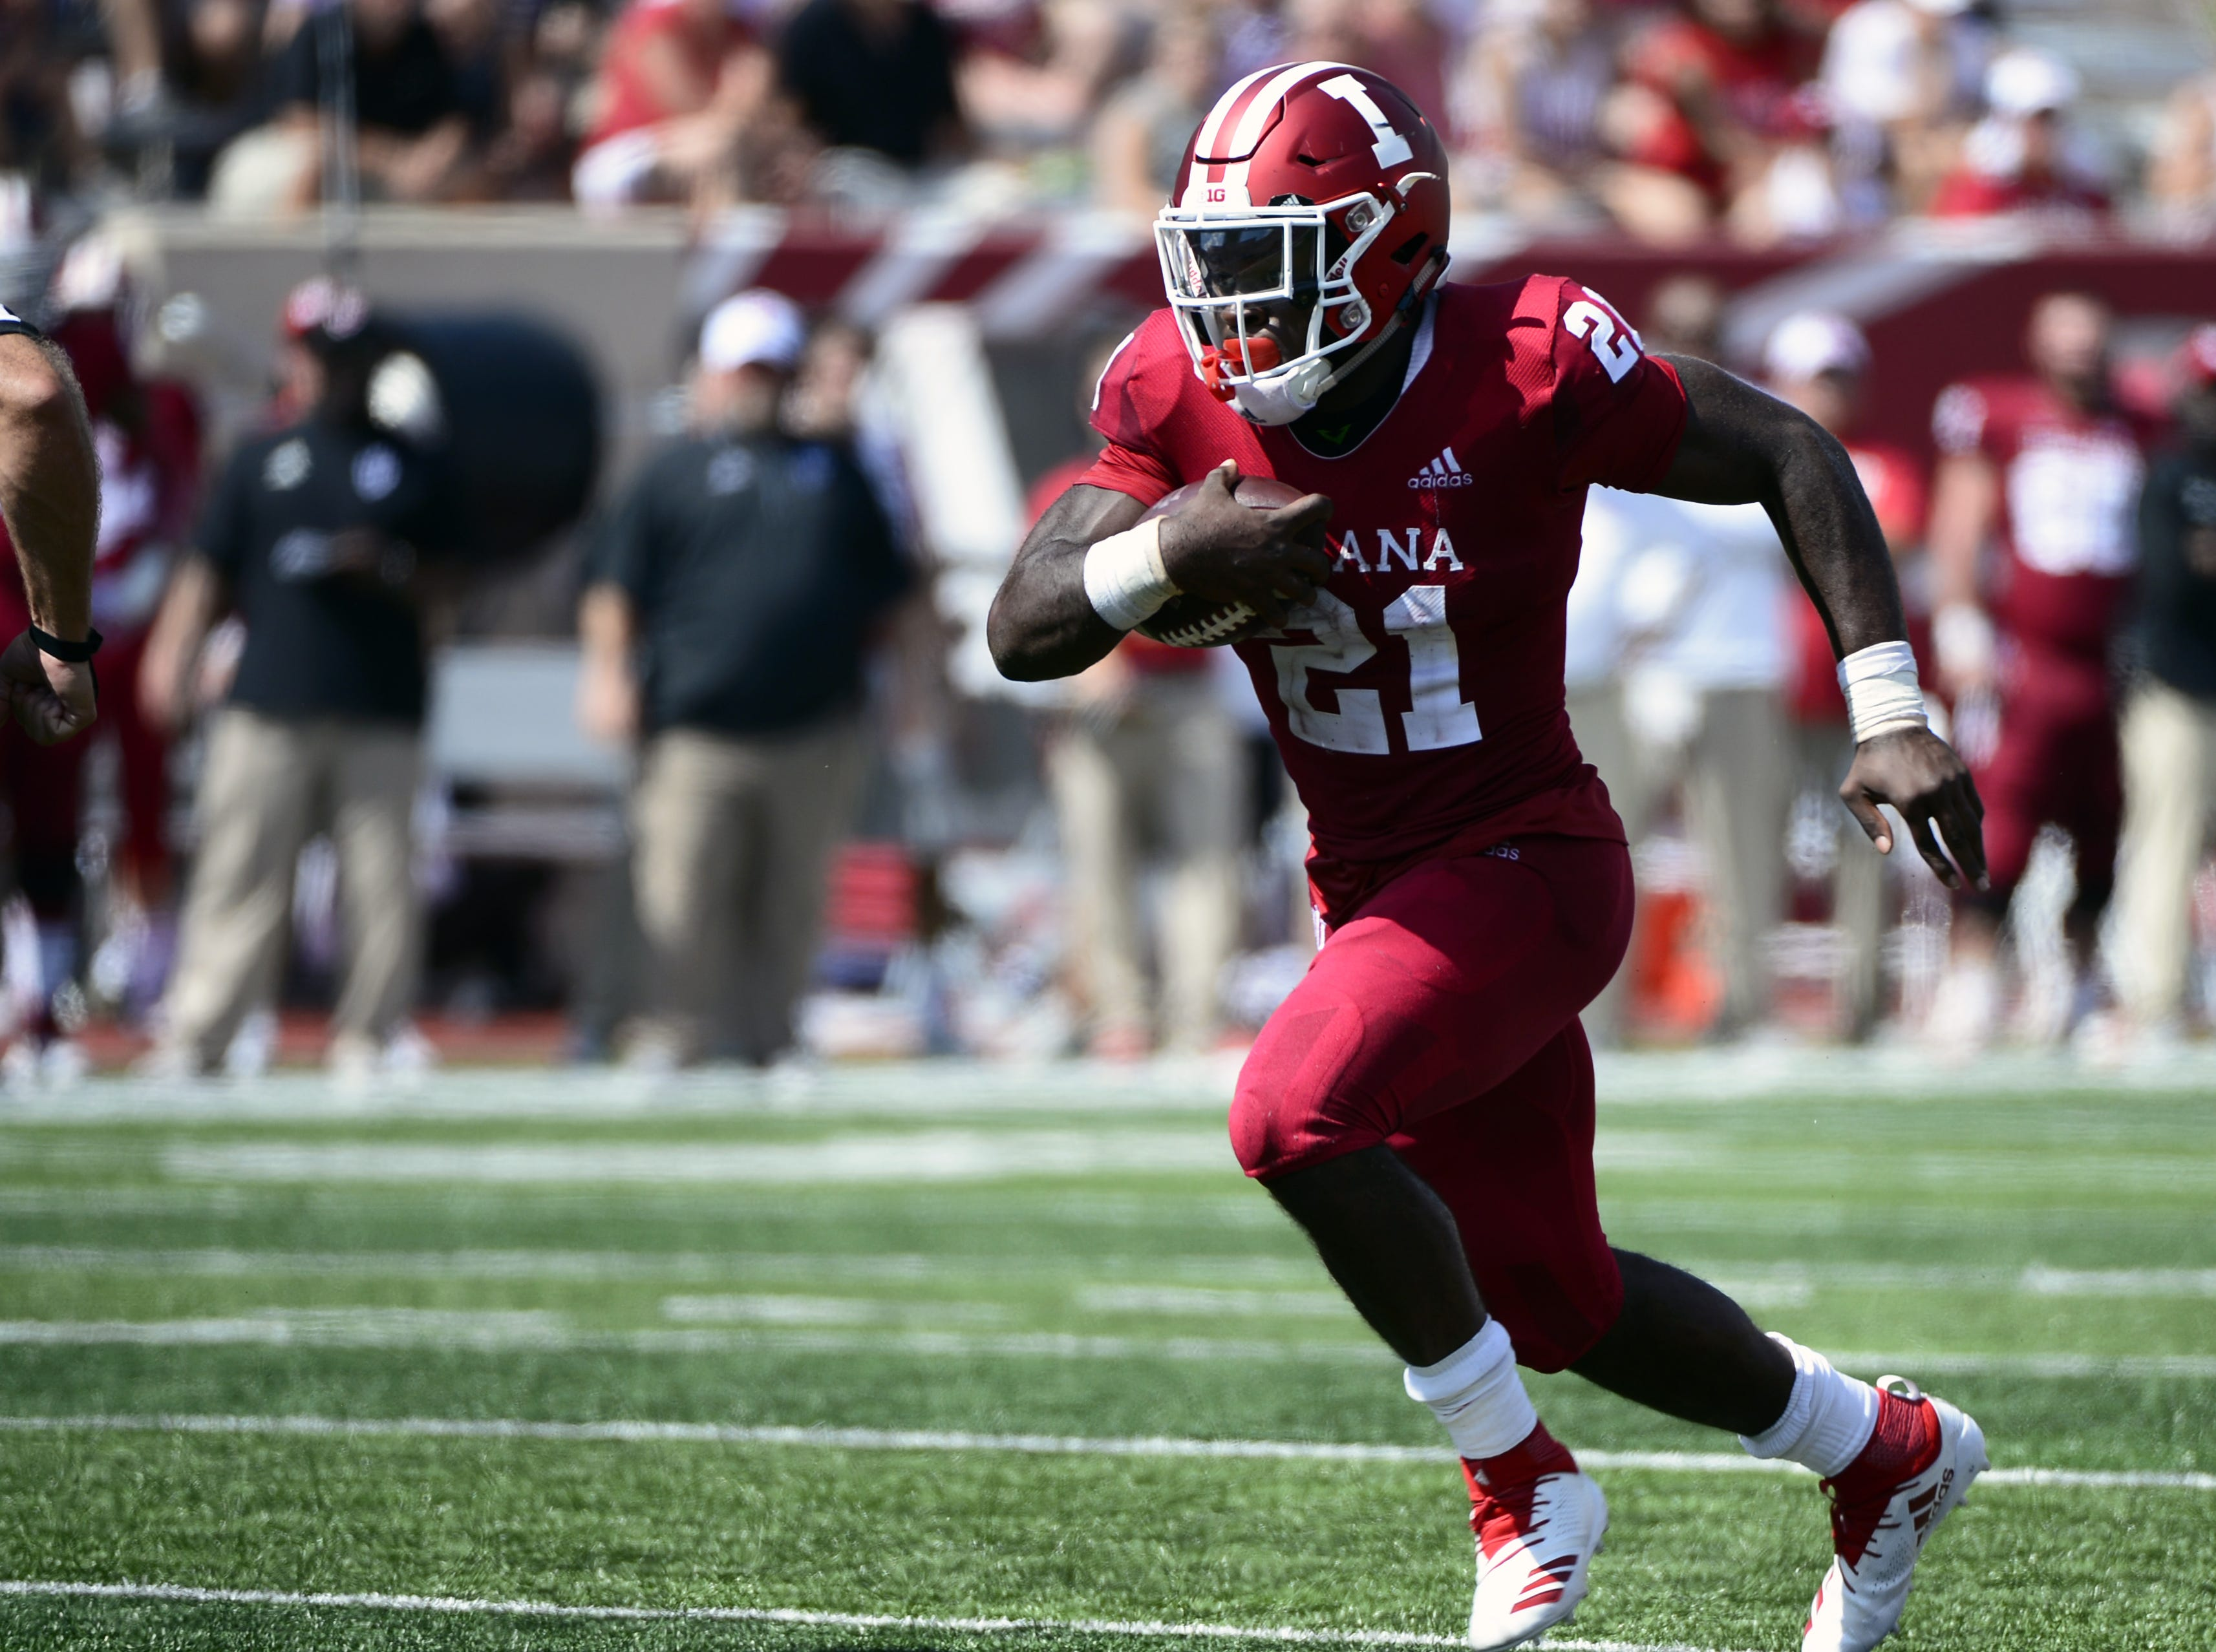 Indiana Hoosiers running back Stevie Scott (21) runs the ball during the game against Ball State at Memorial Stadium in Bloomington, Ind., on Saturday, Sept. 15, 2018.